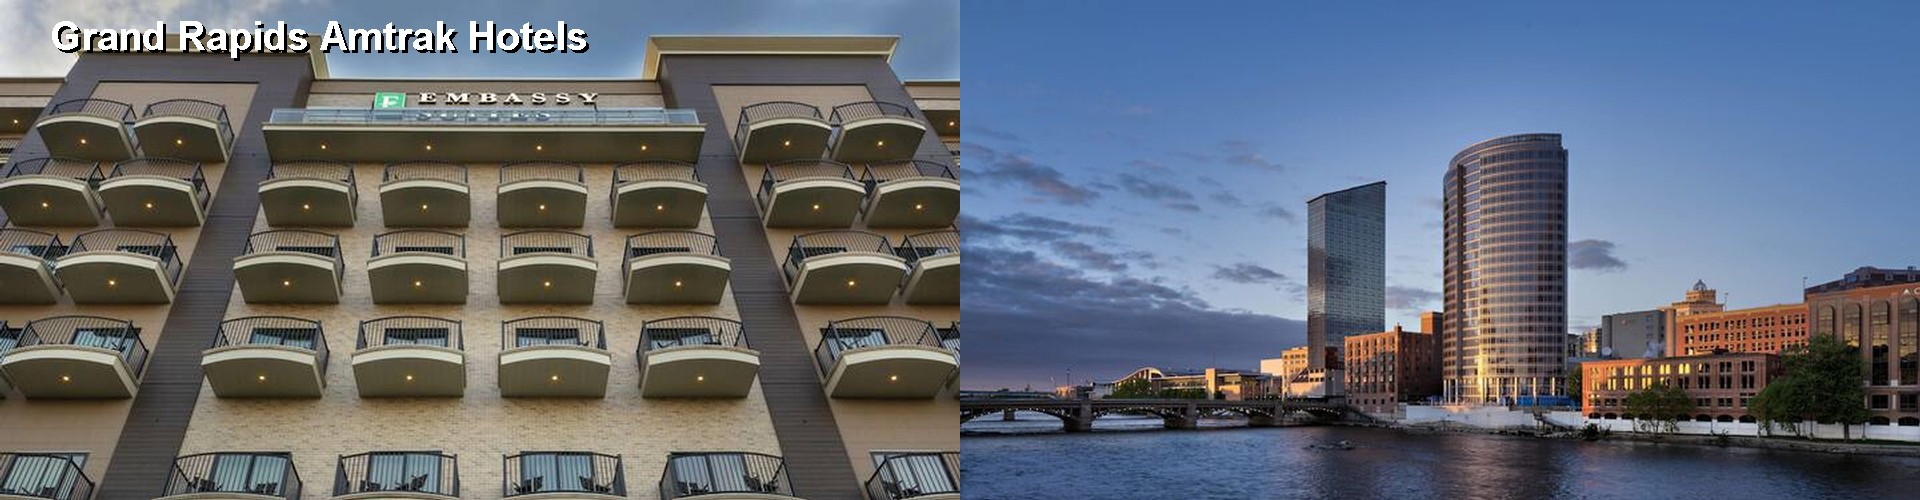 5 Best Hotels near Grand Rapids Amtrak